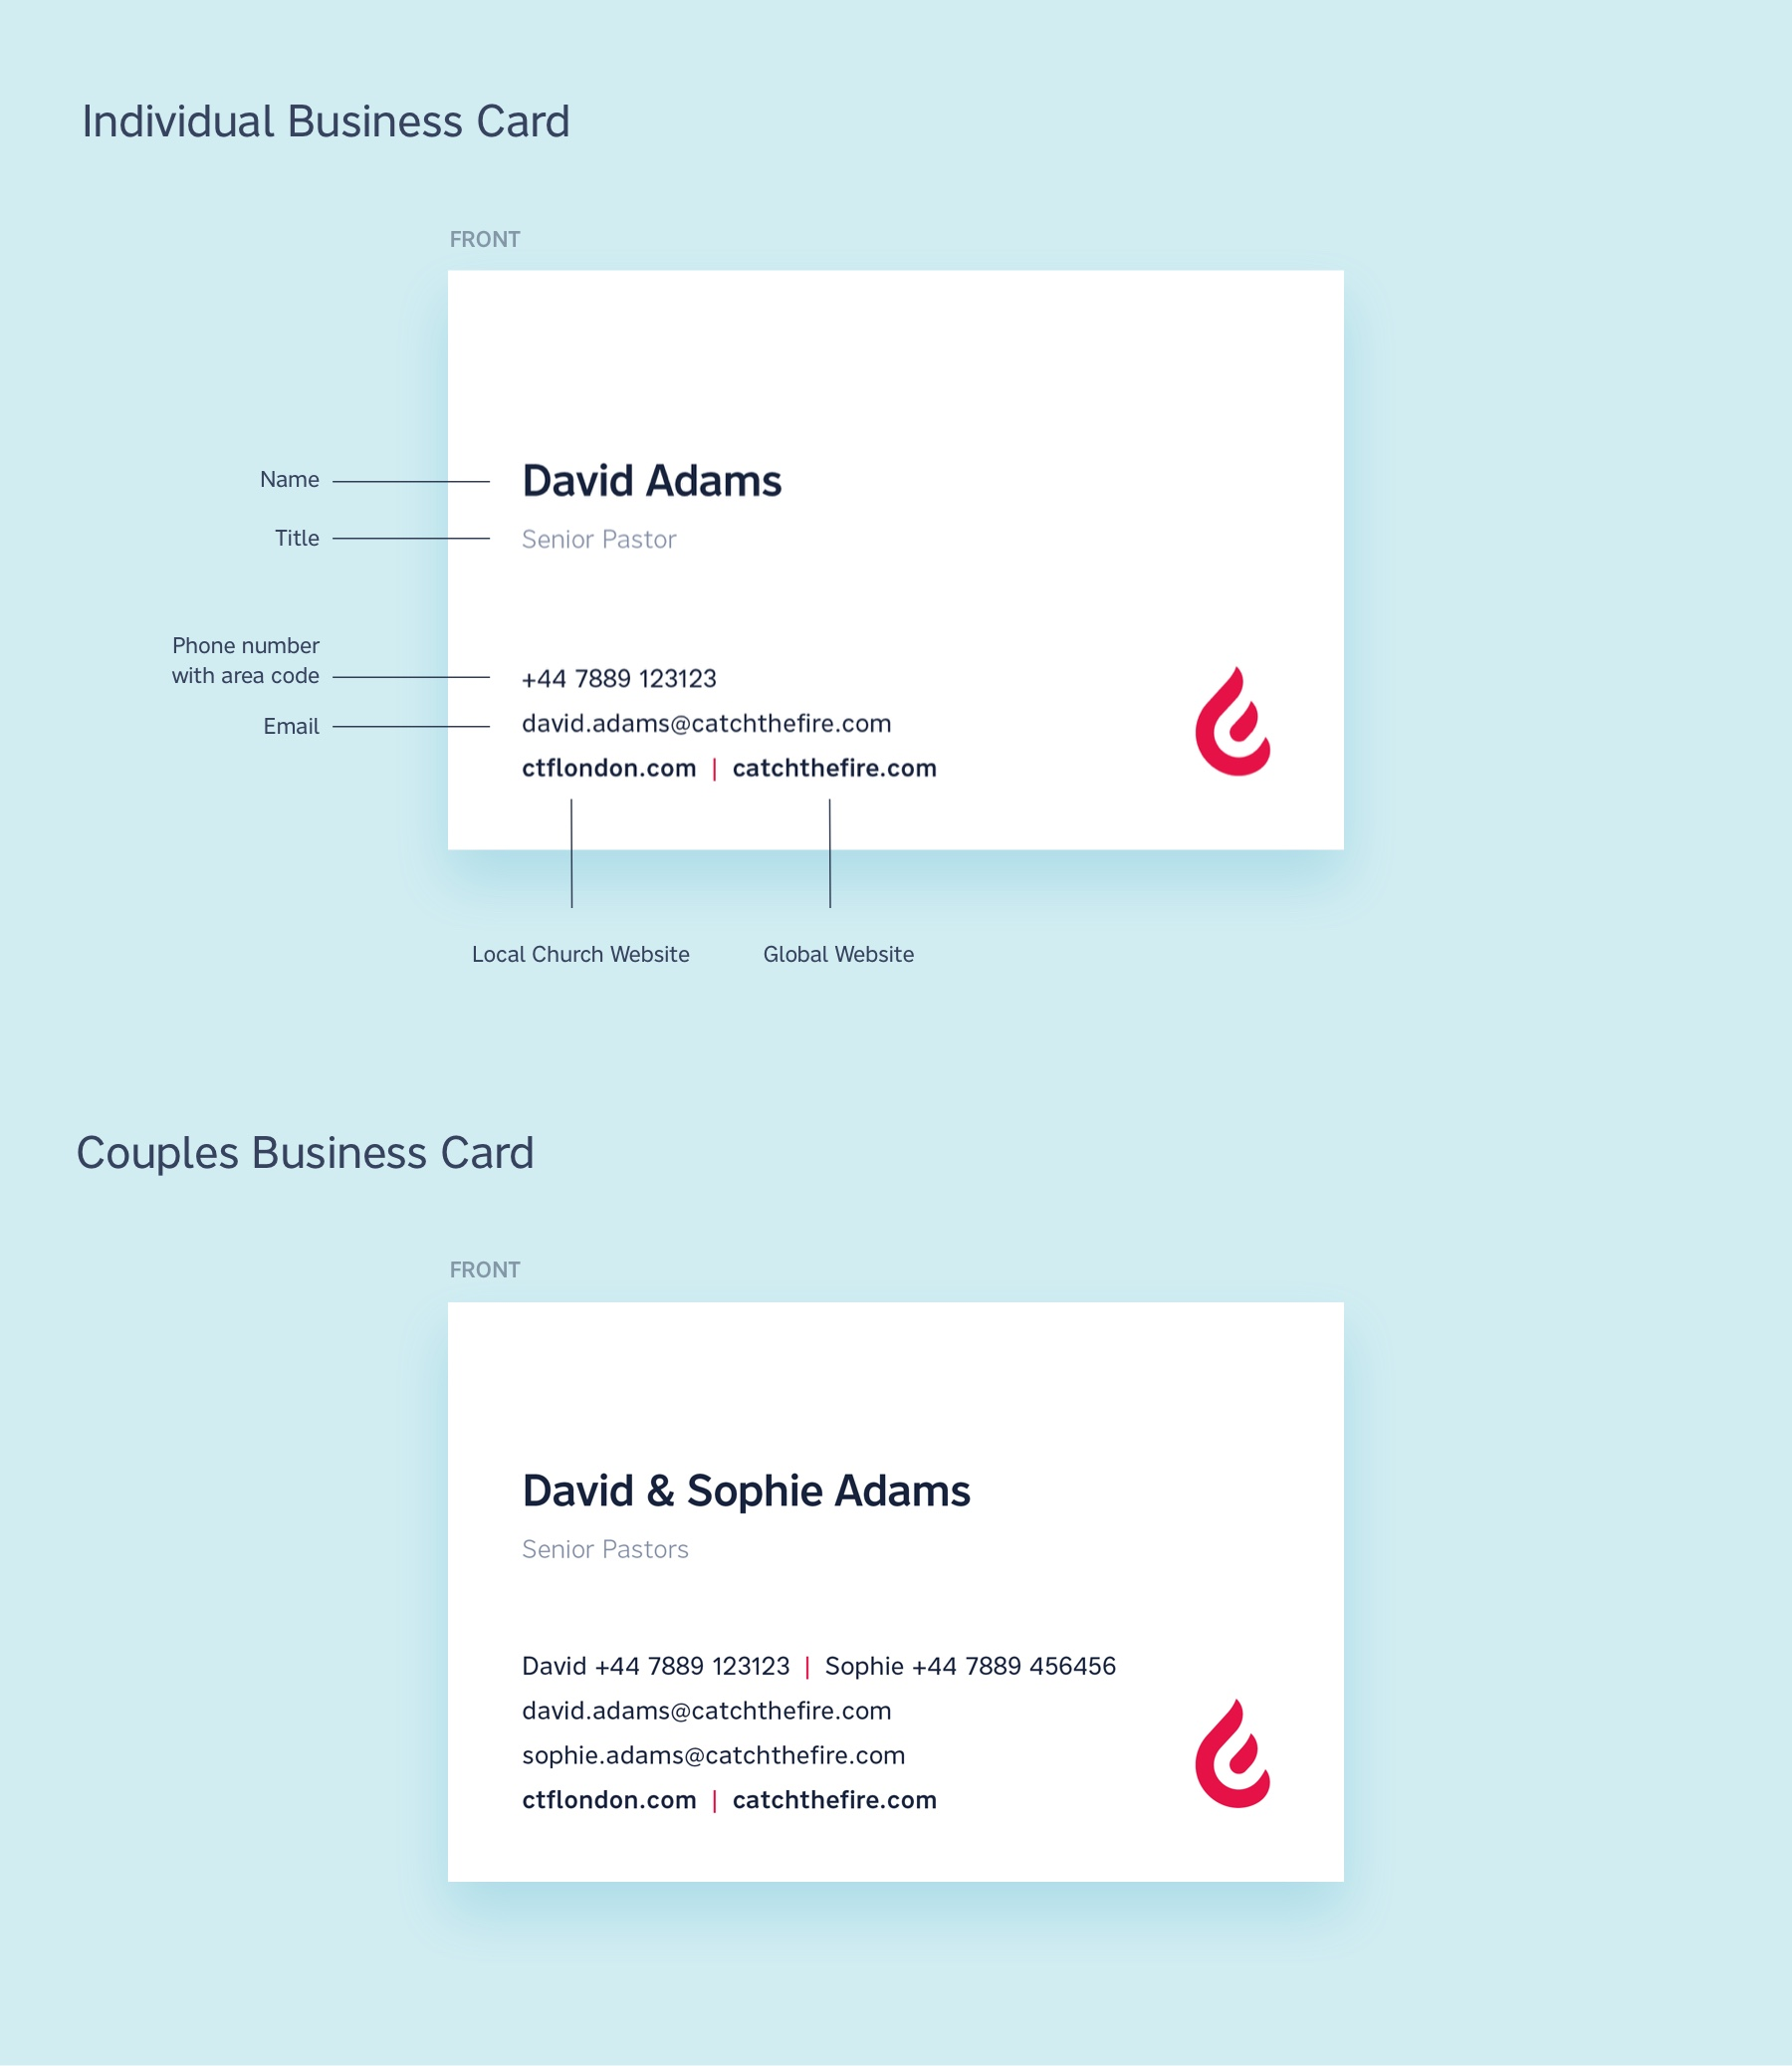 Individual Business Cards.jpg